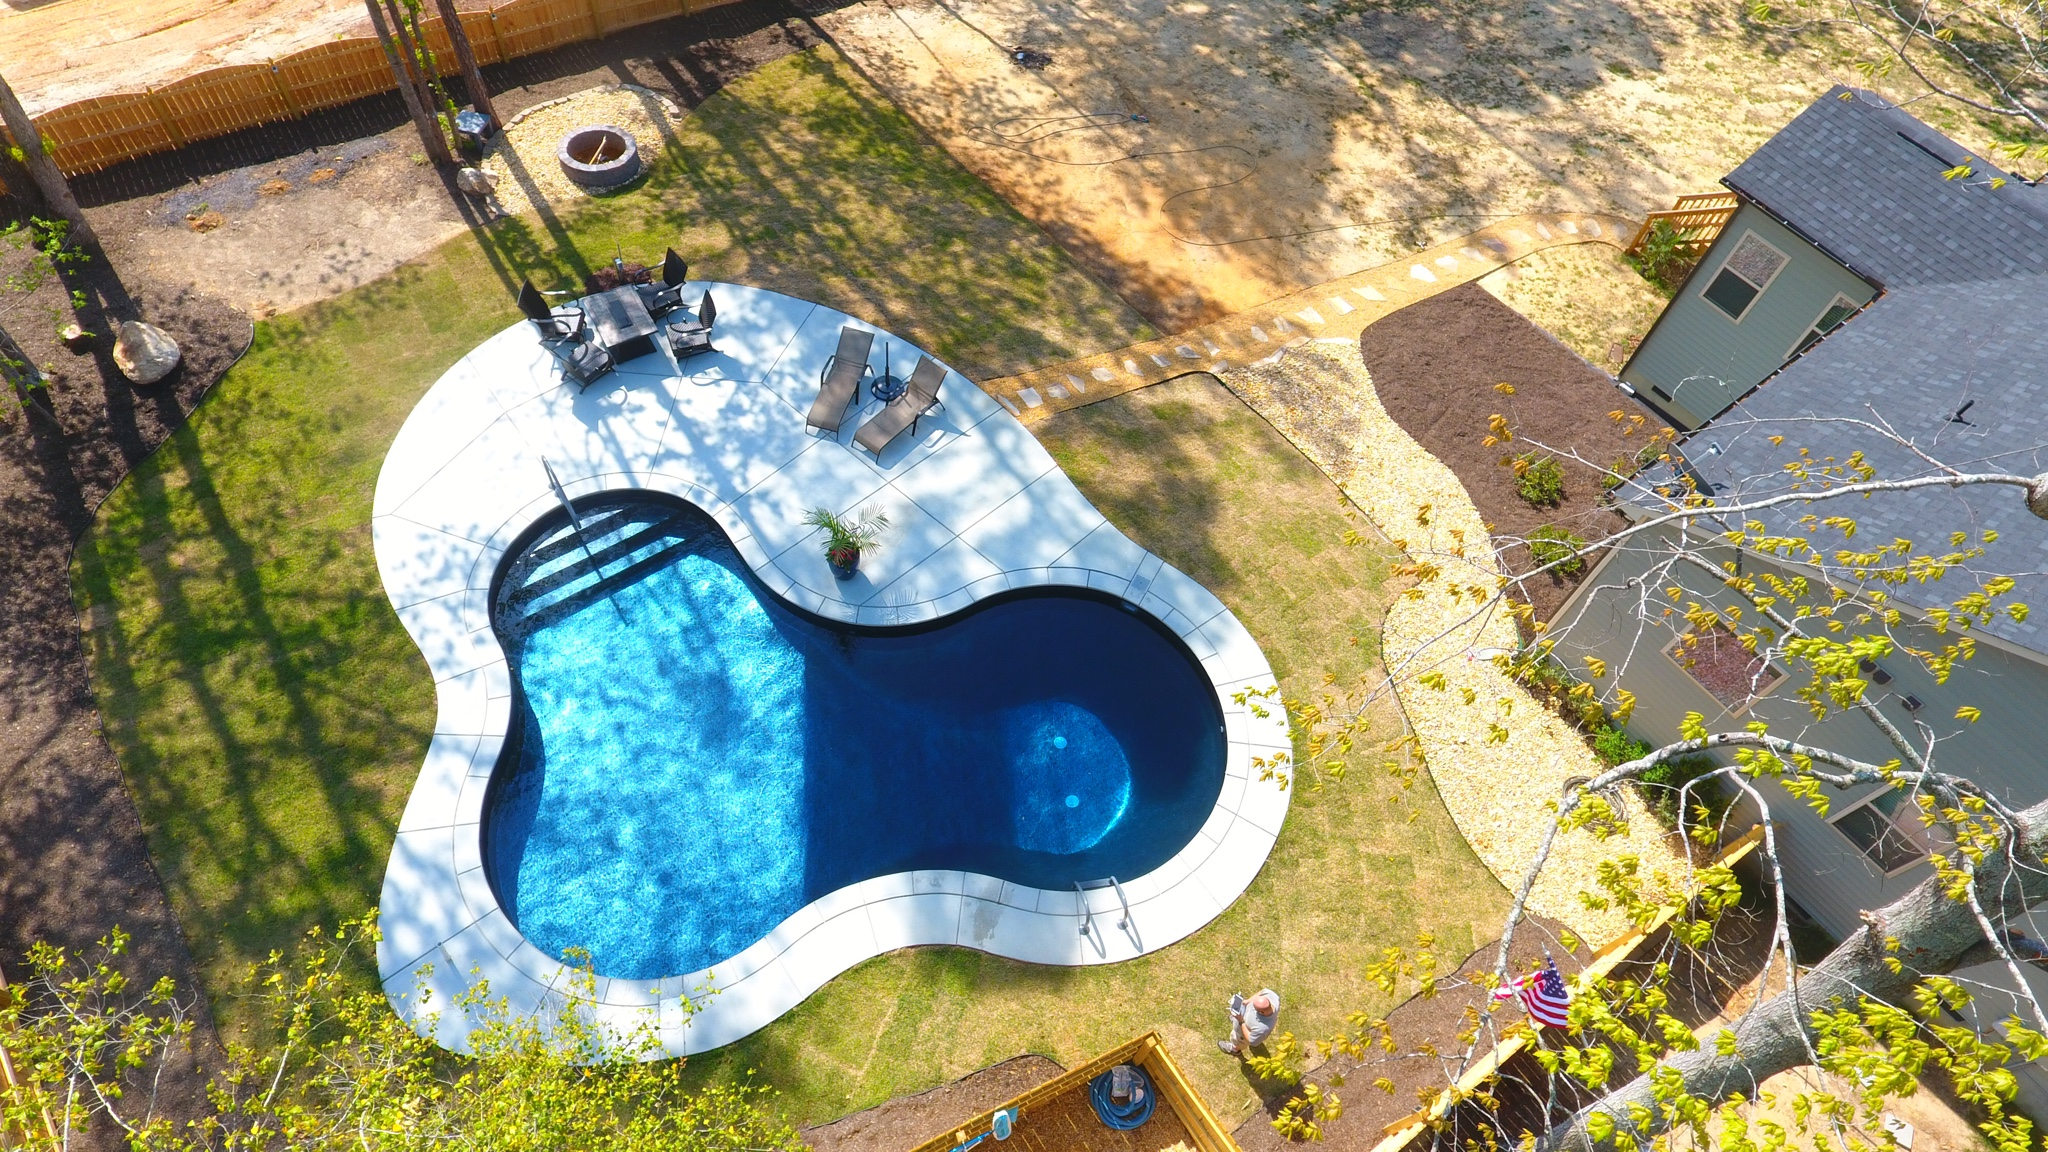 New build vinyl lagoon in north carolina page 3 for Tallahassee pool builders